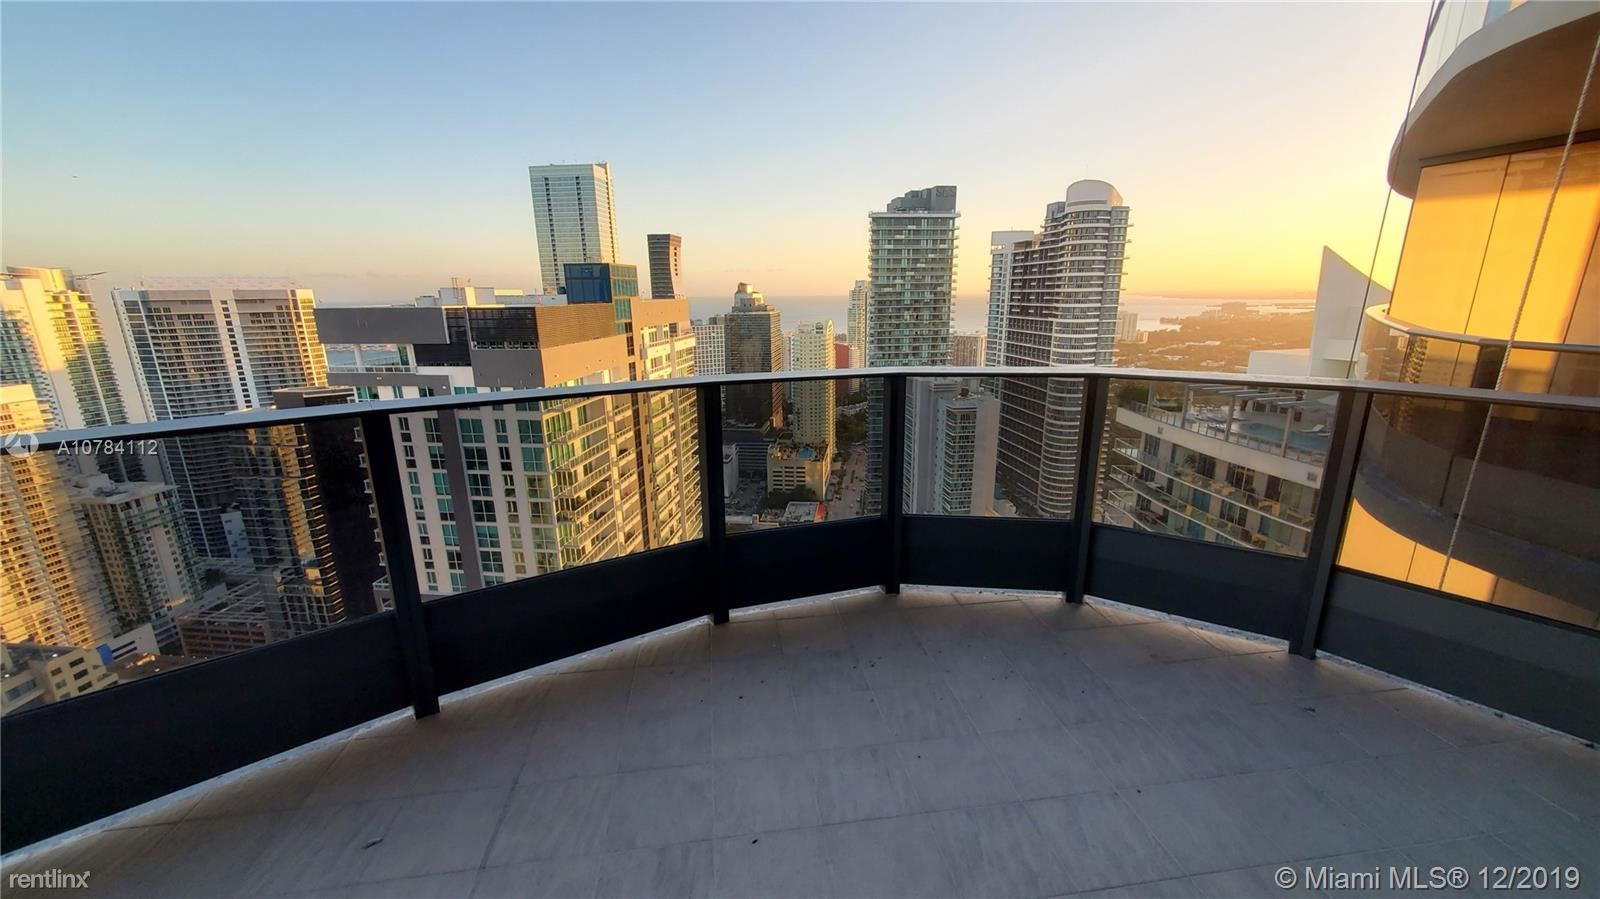 1000 Brickell Plz Unit 4801, Miami, FL - $5,500